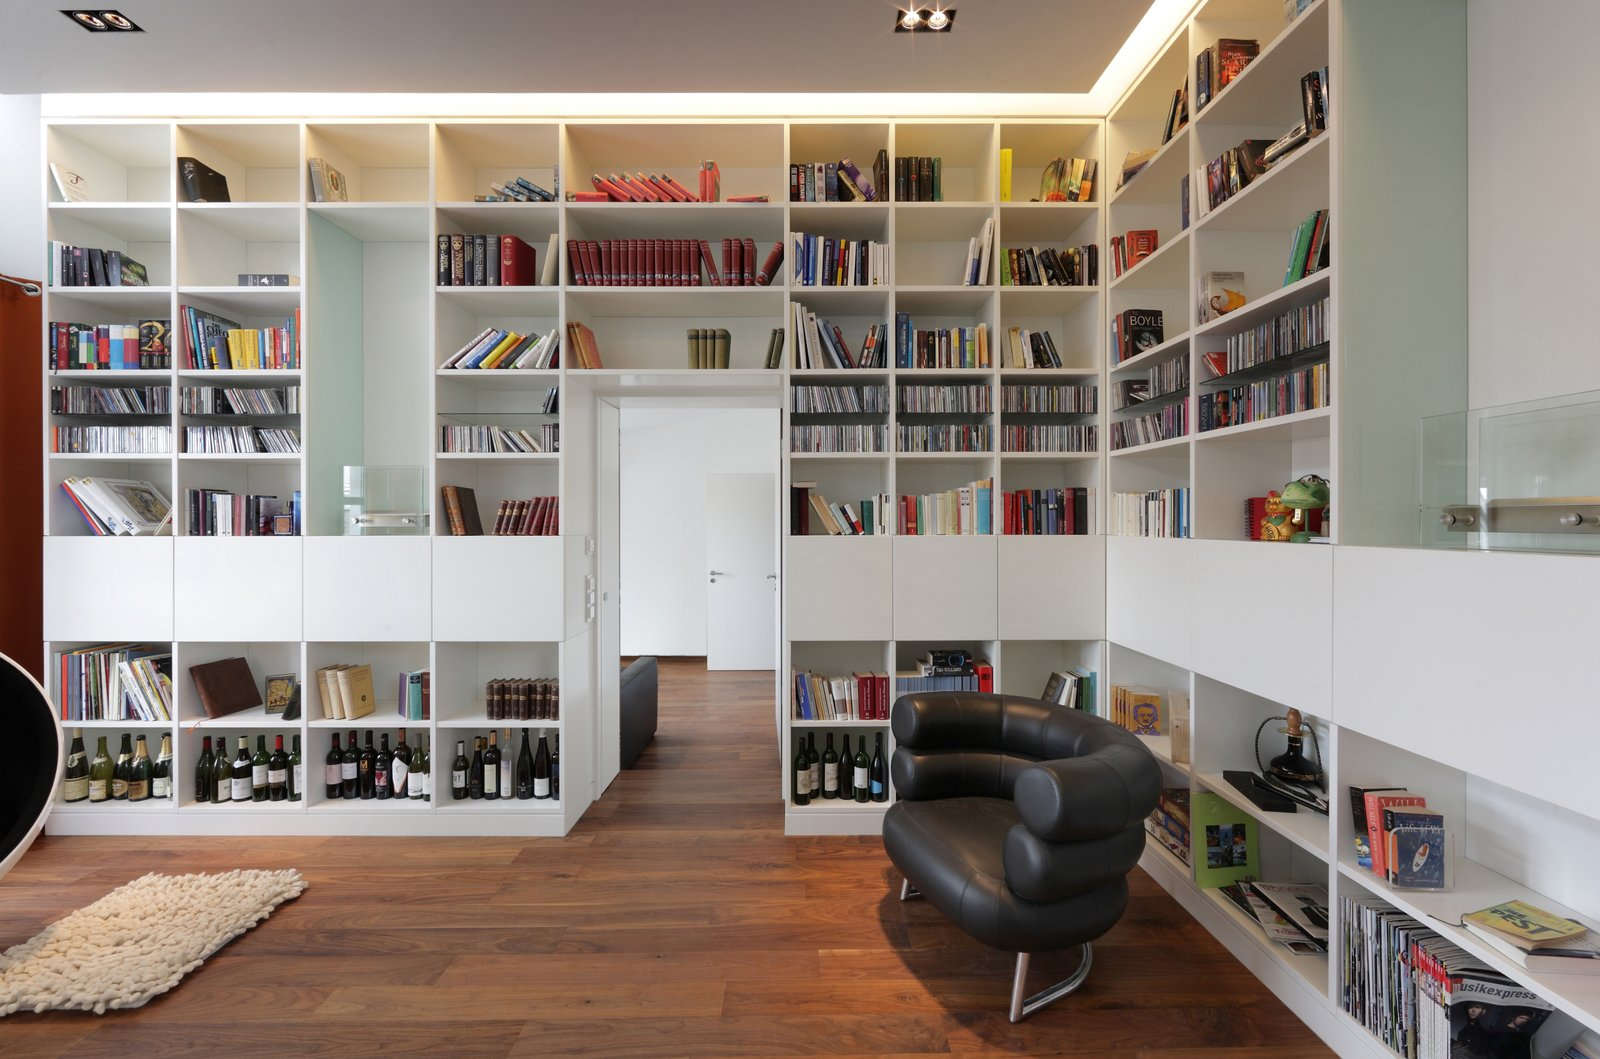 Office, Library Room Type, Bookcase, Storage, Shelves, Lamps, Medium Hardwood Floor, Desk, and Chair  Penthouse Apartment in Bielefeld